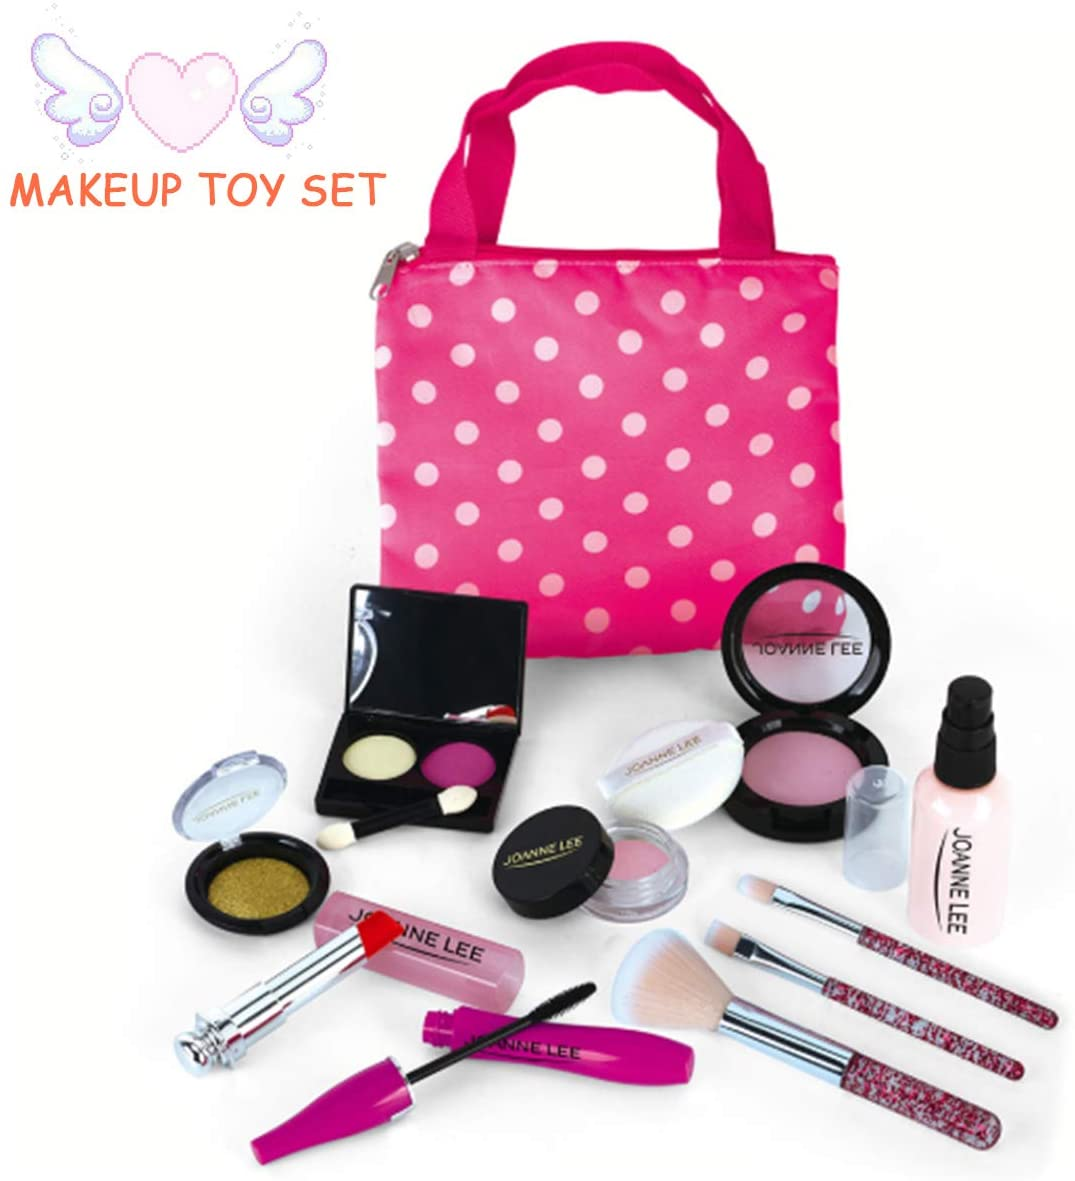 Pretend Makeup Play Sets- 10 Pcs of Girl's Make Up Toys- Washable Makeup Set- Realistic Beauty Makeup Kit- Comes with Stylish Bag- Birthday (Not Real Cosmetics)